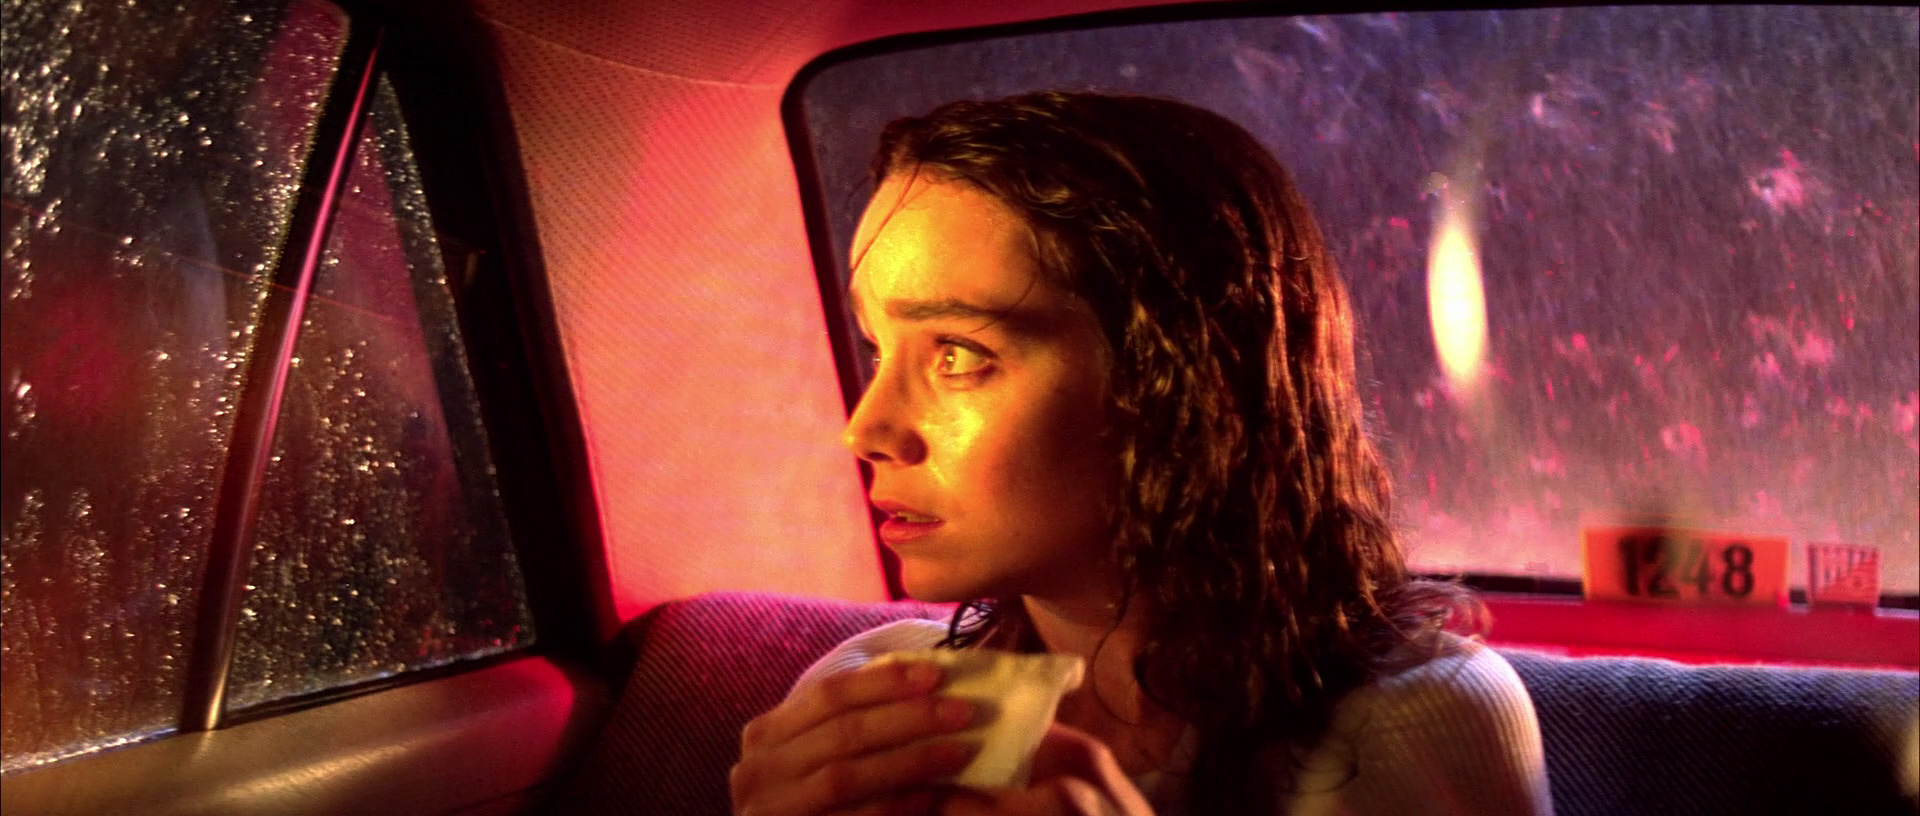 SUSPIRIA RED LIGHTS.jpg